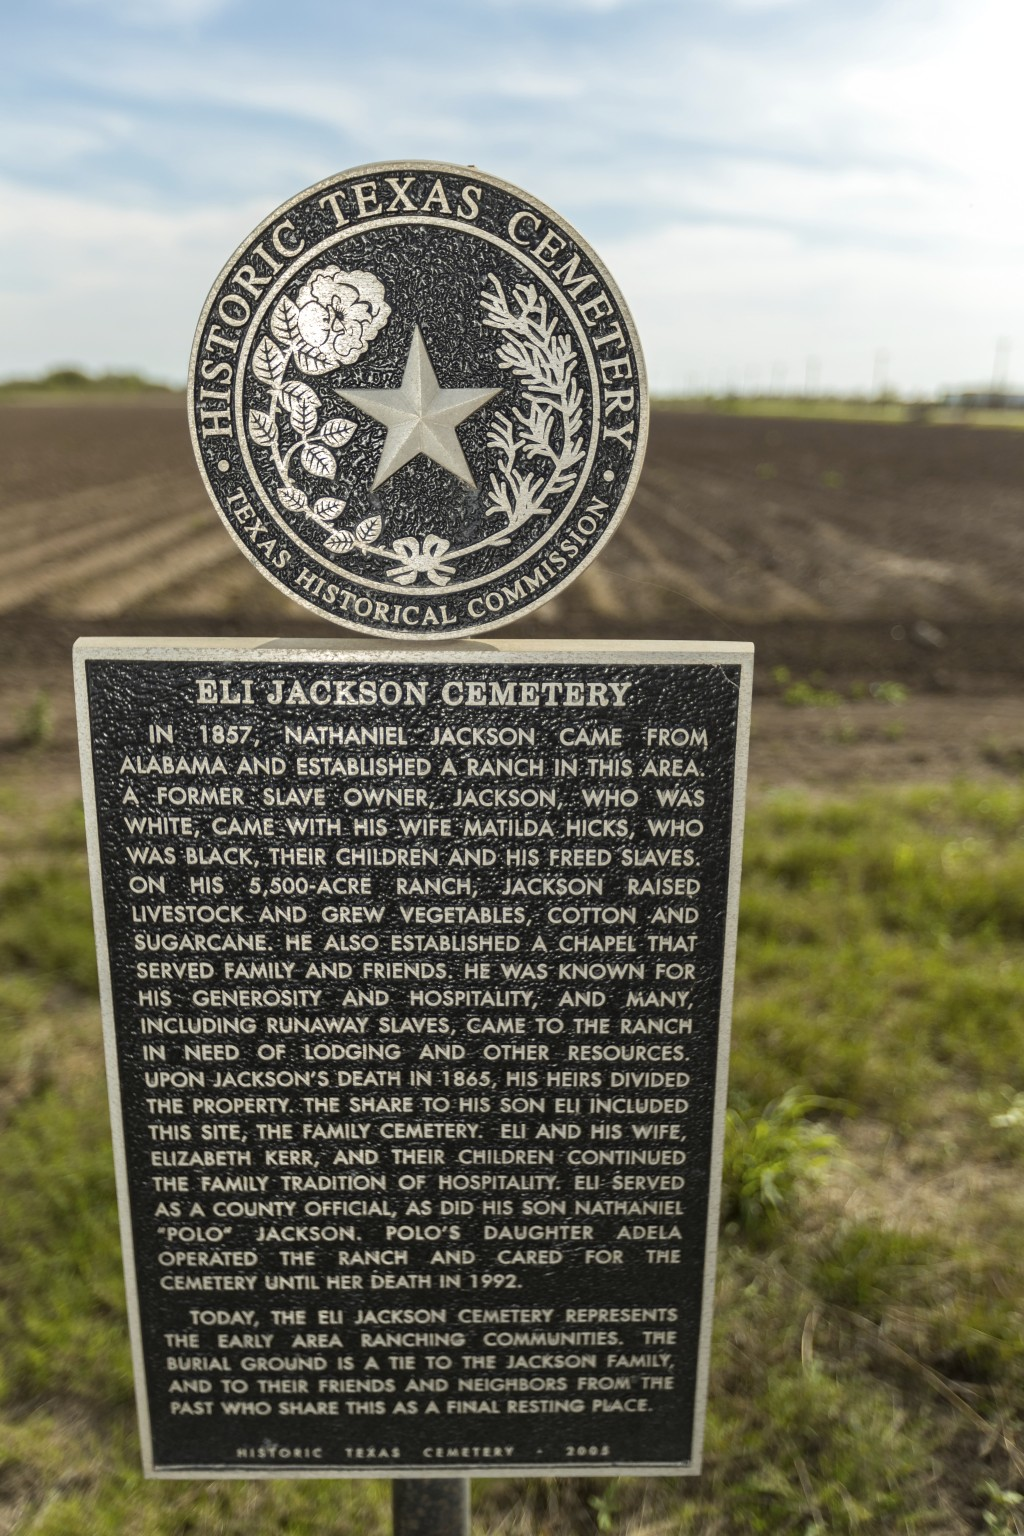 In this Feb. 2, 2019, photo, provided by the University of Texas Rio Grande Valley, is a marker for the Eli Jackson Cemetery in San Juan, Texas. It is...